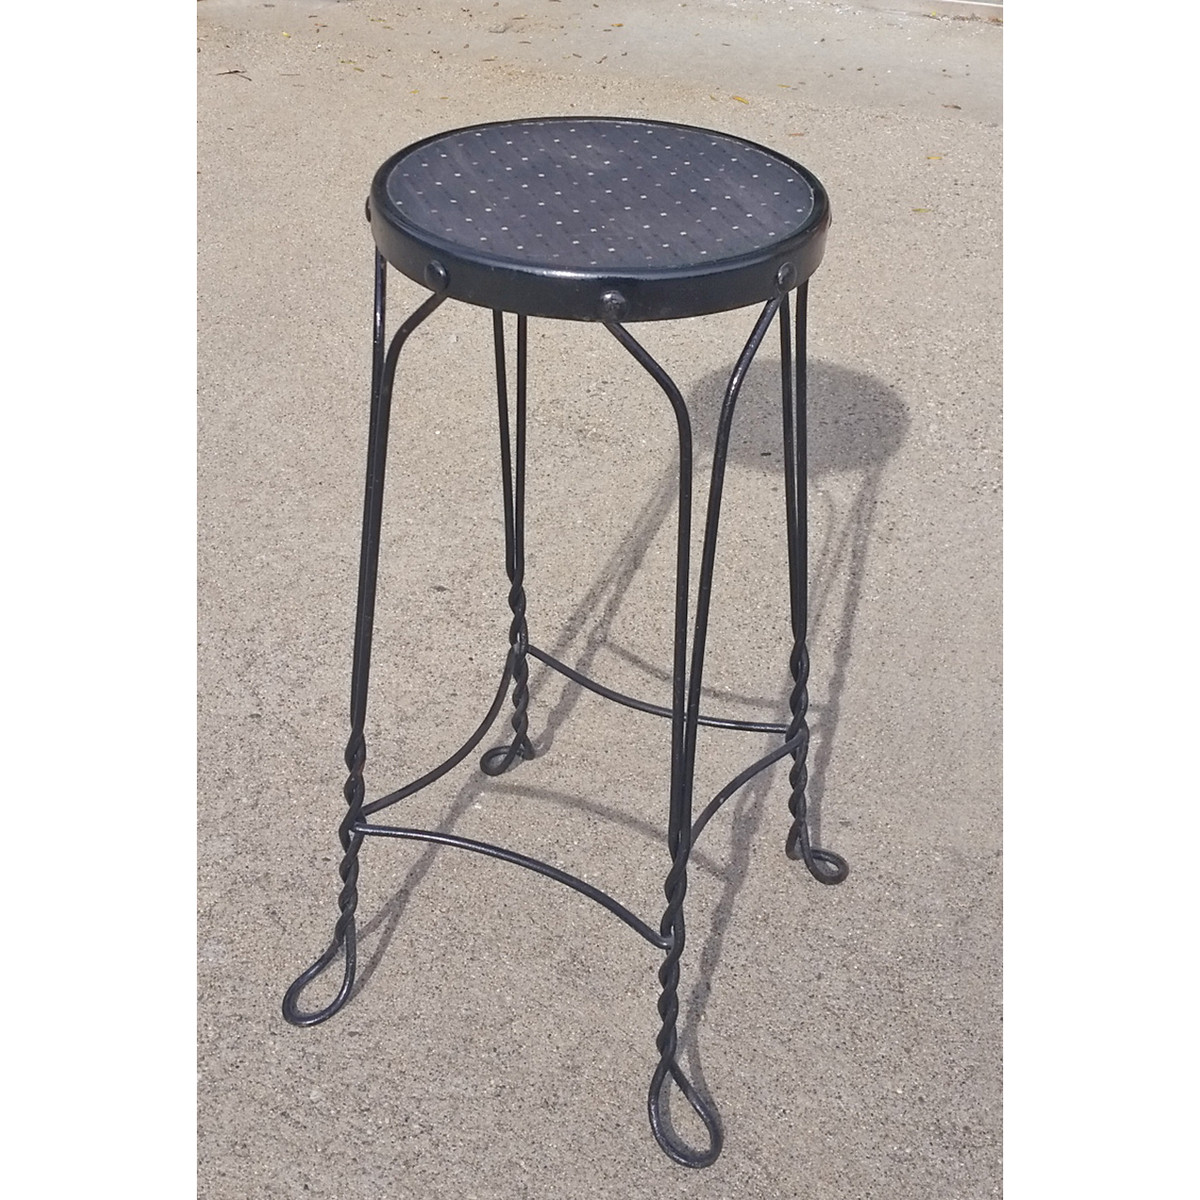 F19021 - Antique Wrought Iron Stool